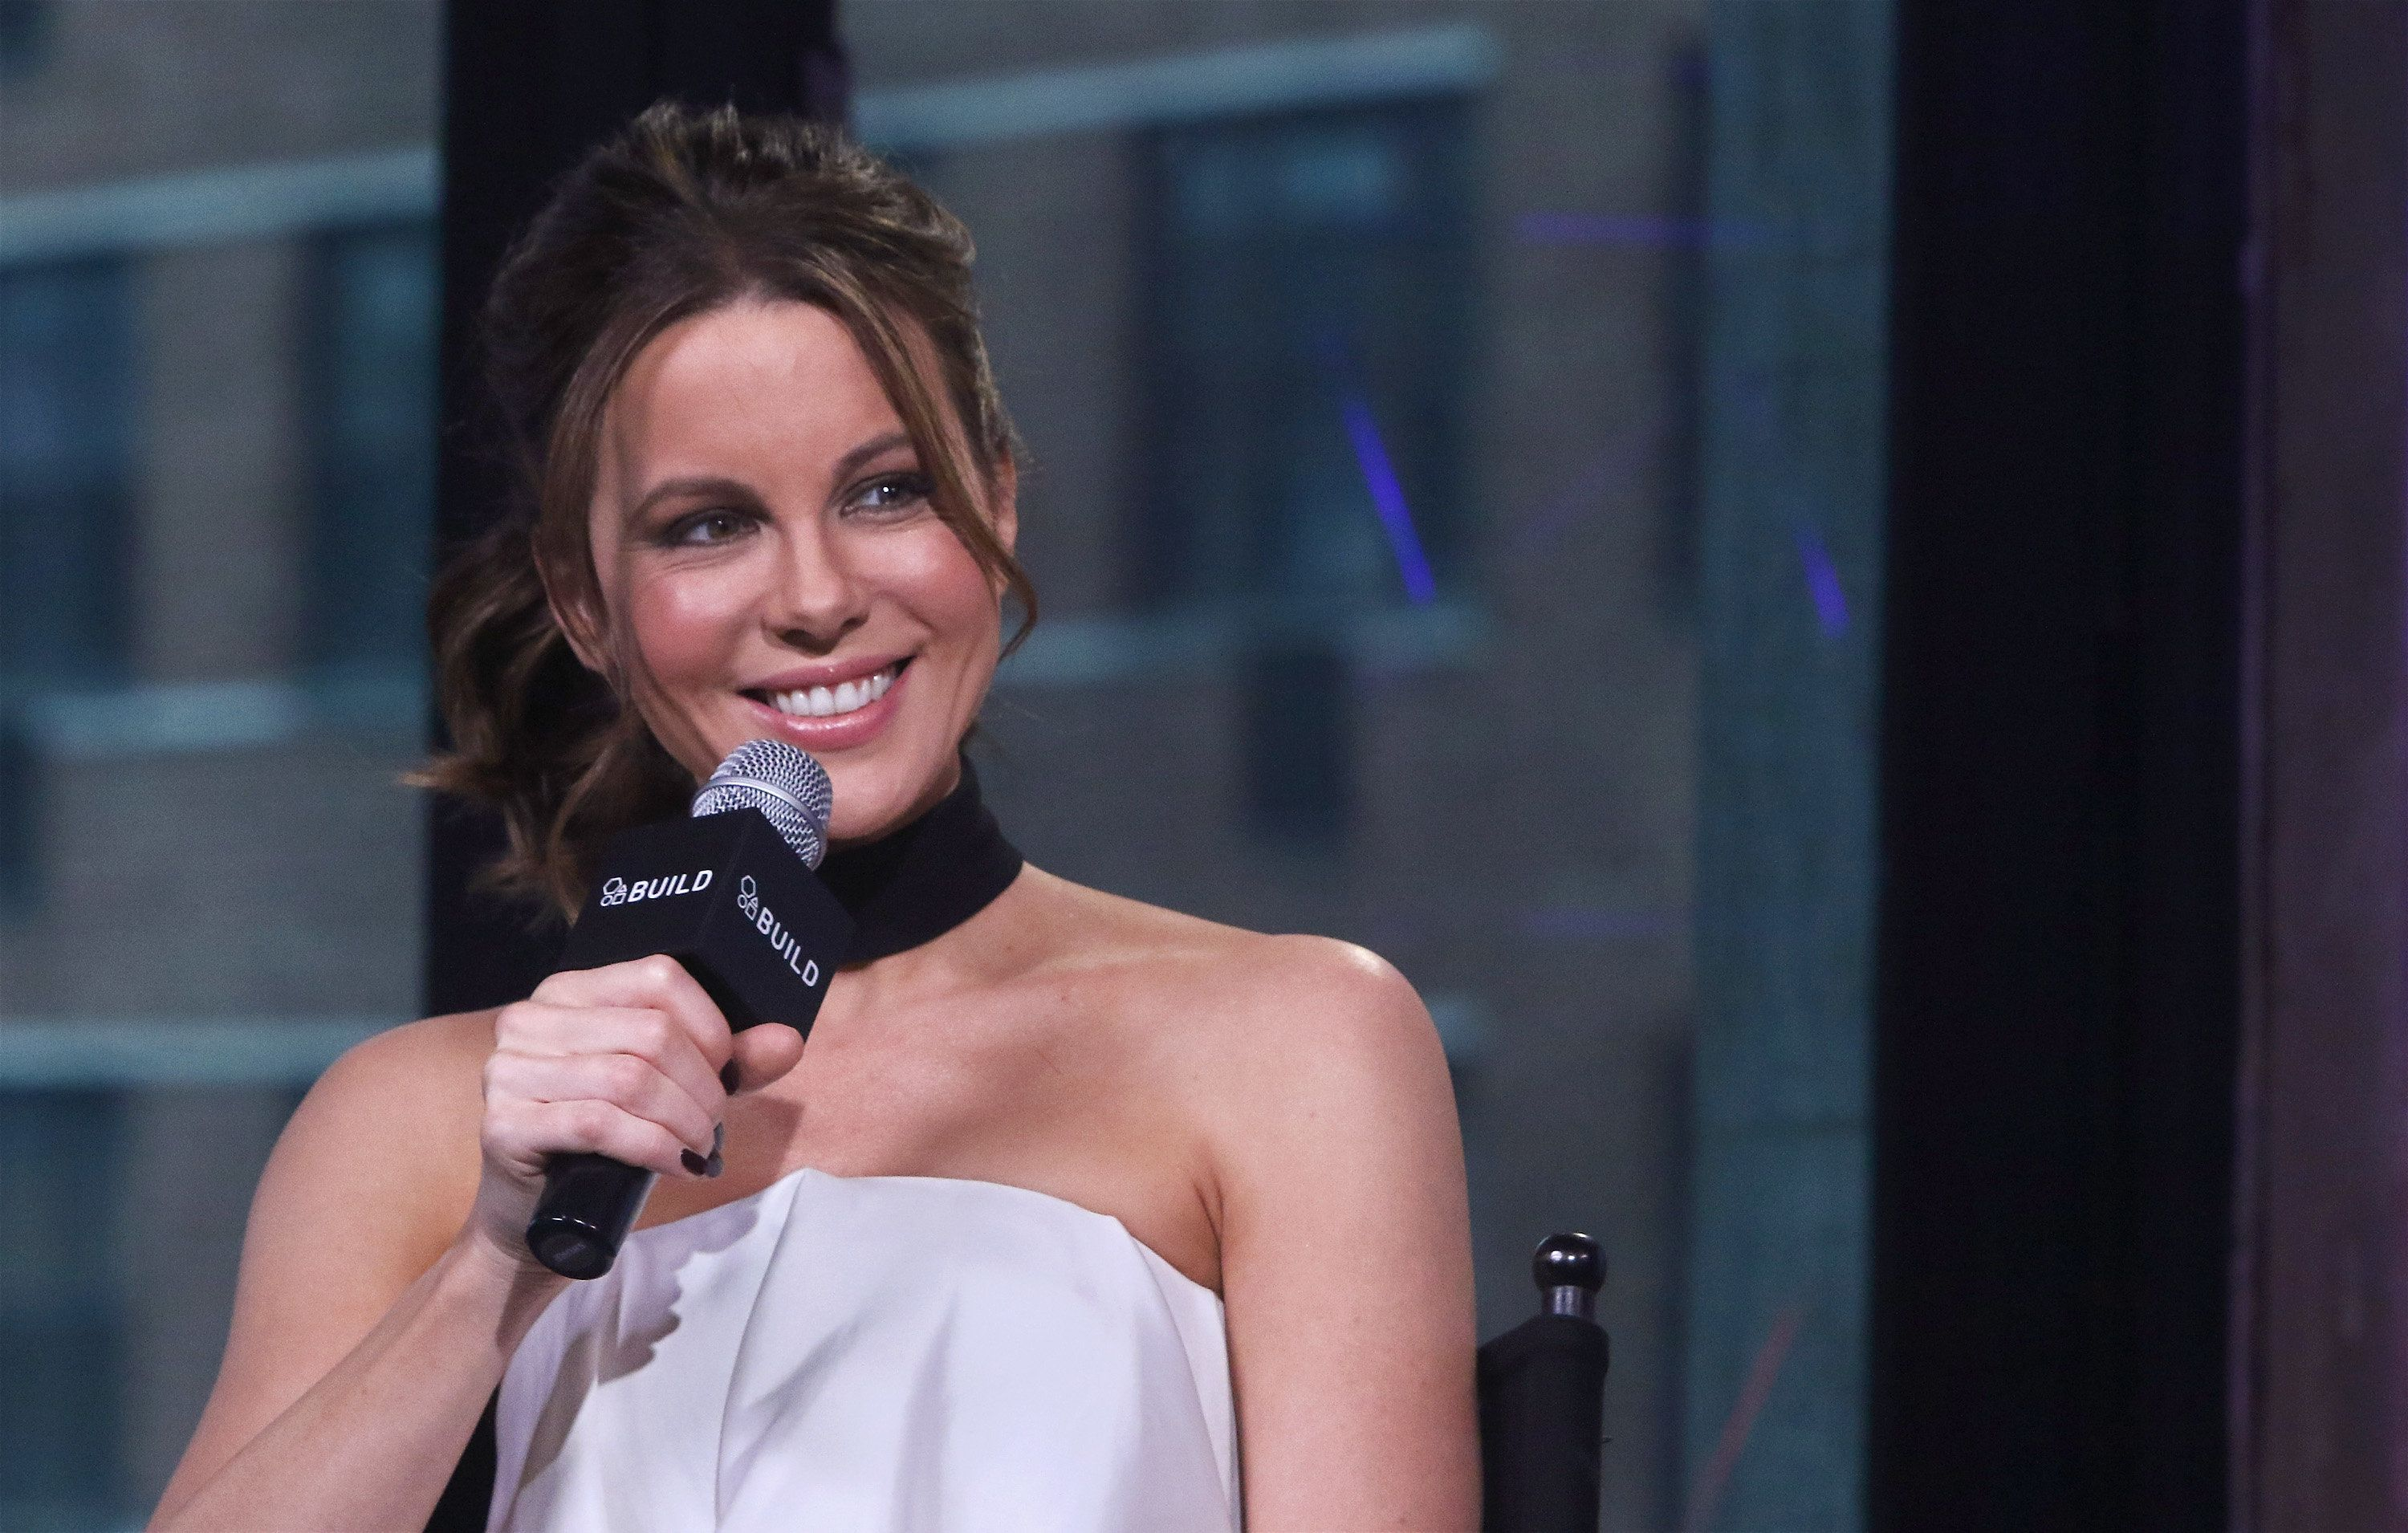 NEW YORK, NY - JANUARY 04:  Actress Kate Beckinsale attends the Build series to discuss 'Underworld: Blood Wars' at AOL HQ on January 4, 2017 in New York City.  (Photo by Jim Spellman/WireImage)